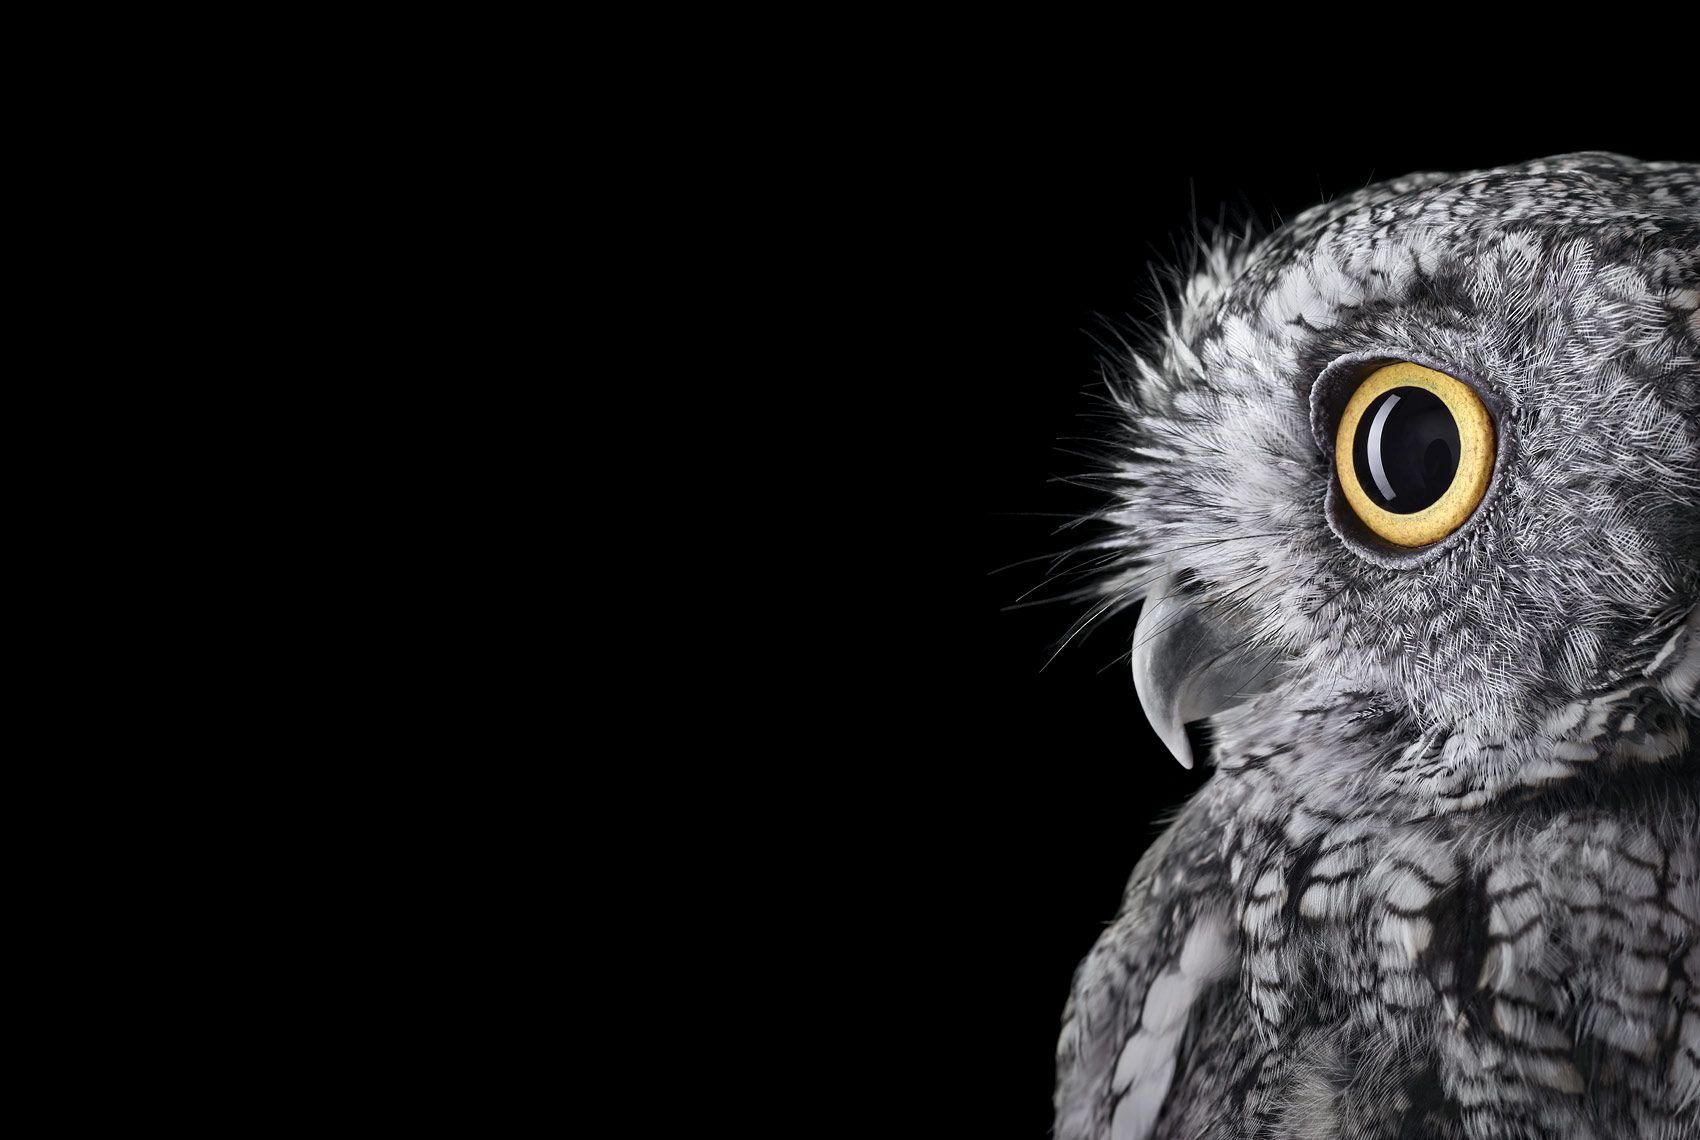 Western Screech Owl #2, Espanola, NM, 2011,Brad Wilson,Photographie contemporaine